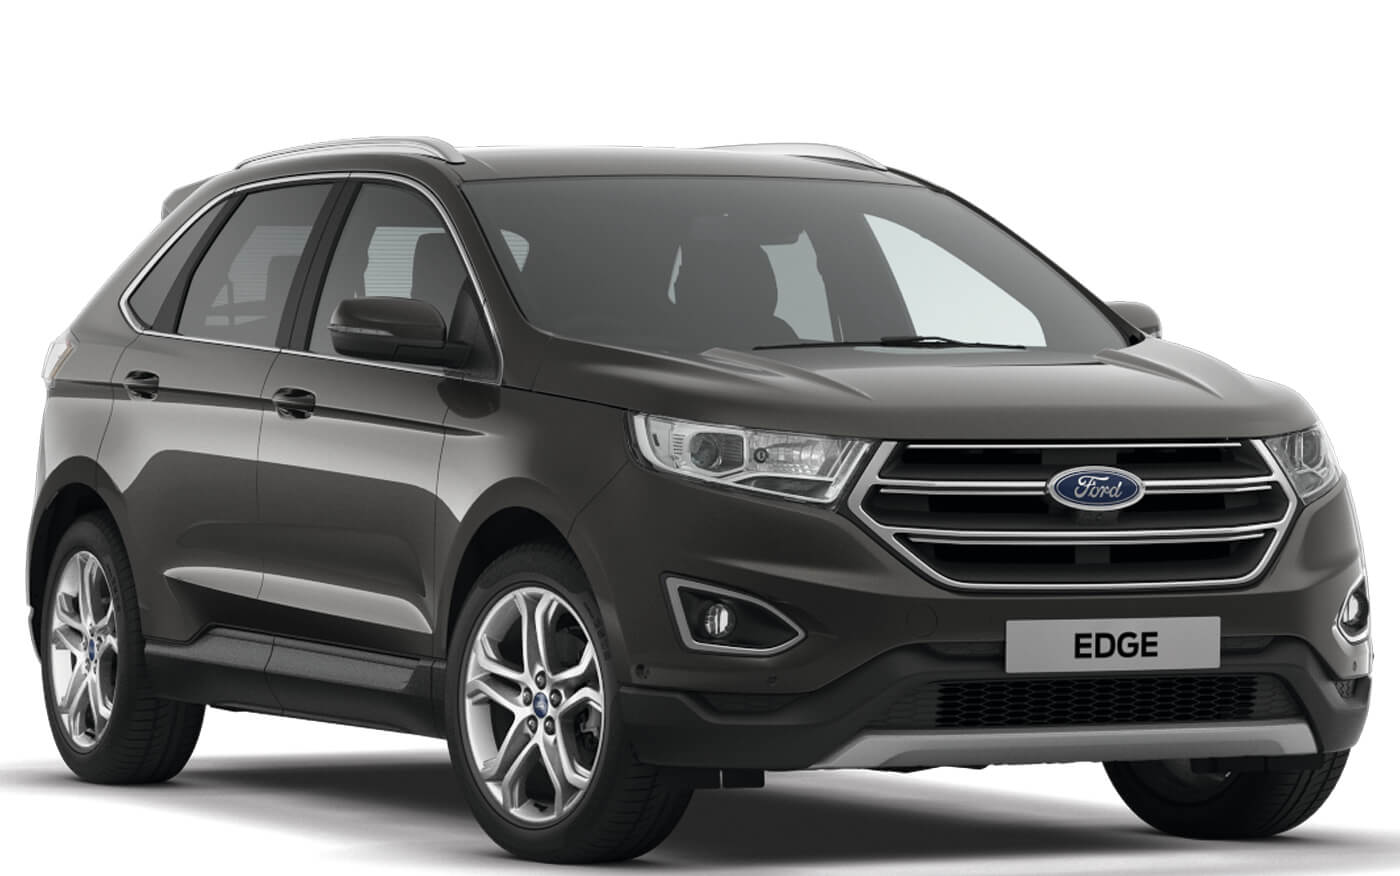 ford edge 2 0 tdci titanium 180ps awd for sale. Black Bedroom Furniture Sets. Home Design Ideas